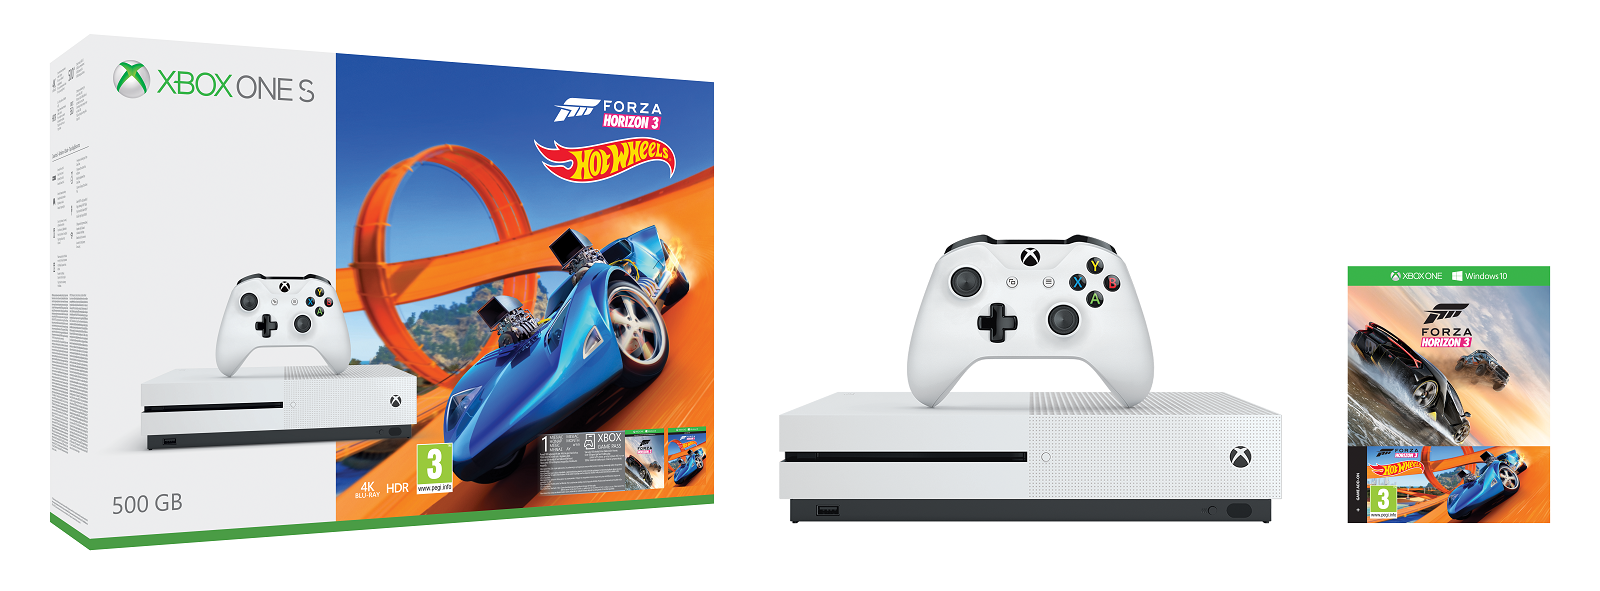 XBOX ONE S 500 GB + Forza Horizon 3 + Forza Horizon 3 Hot Wheels DLC